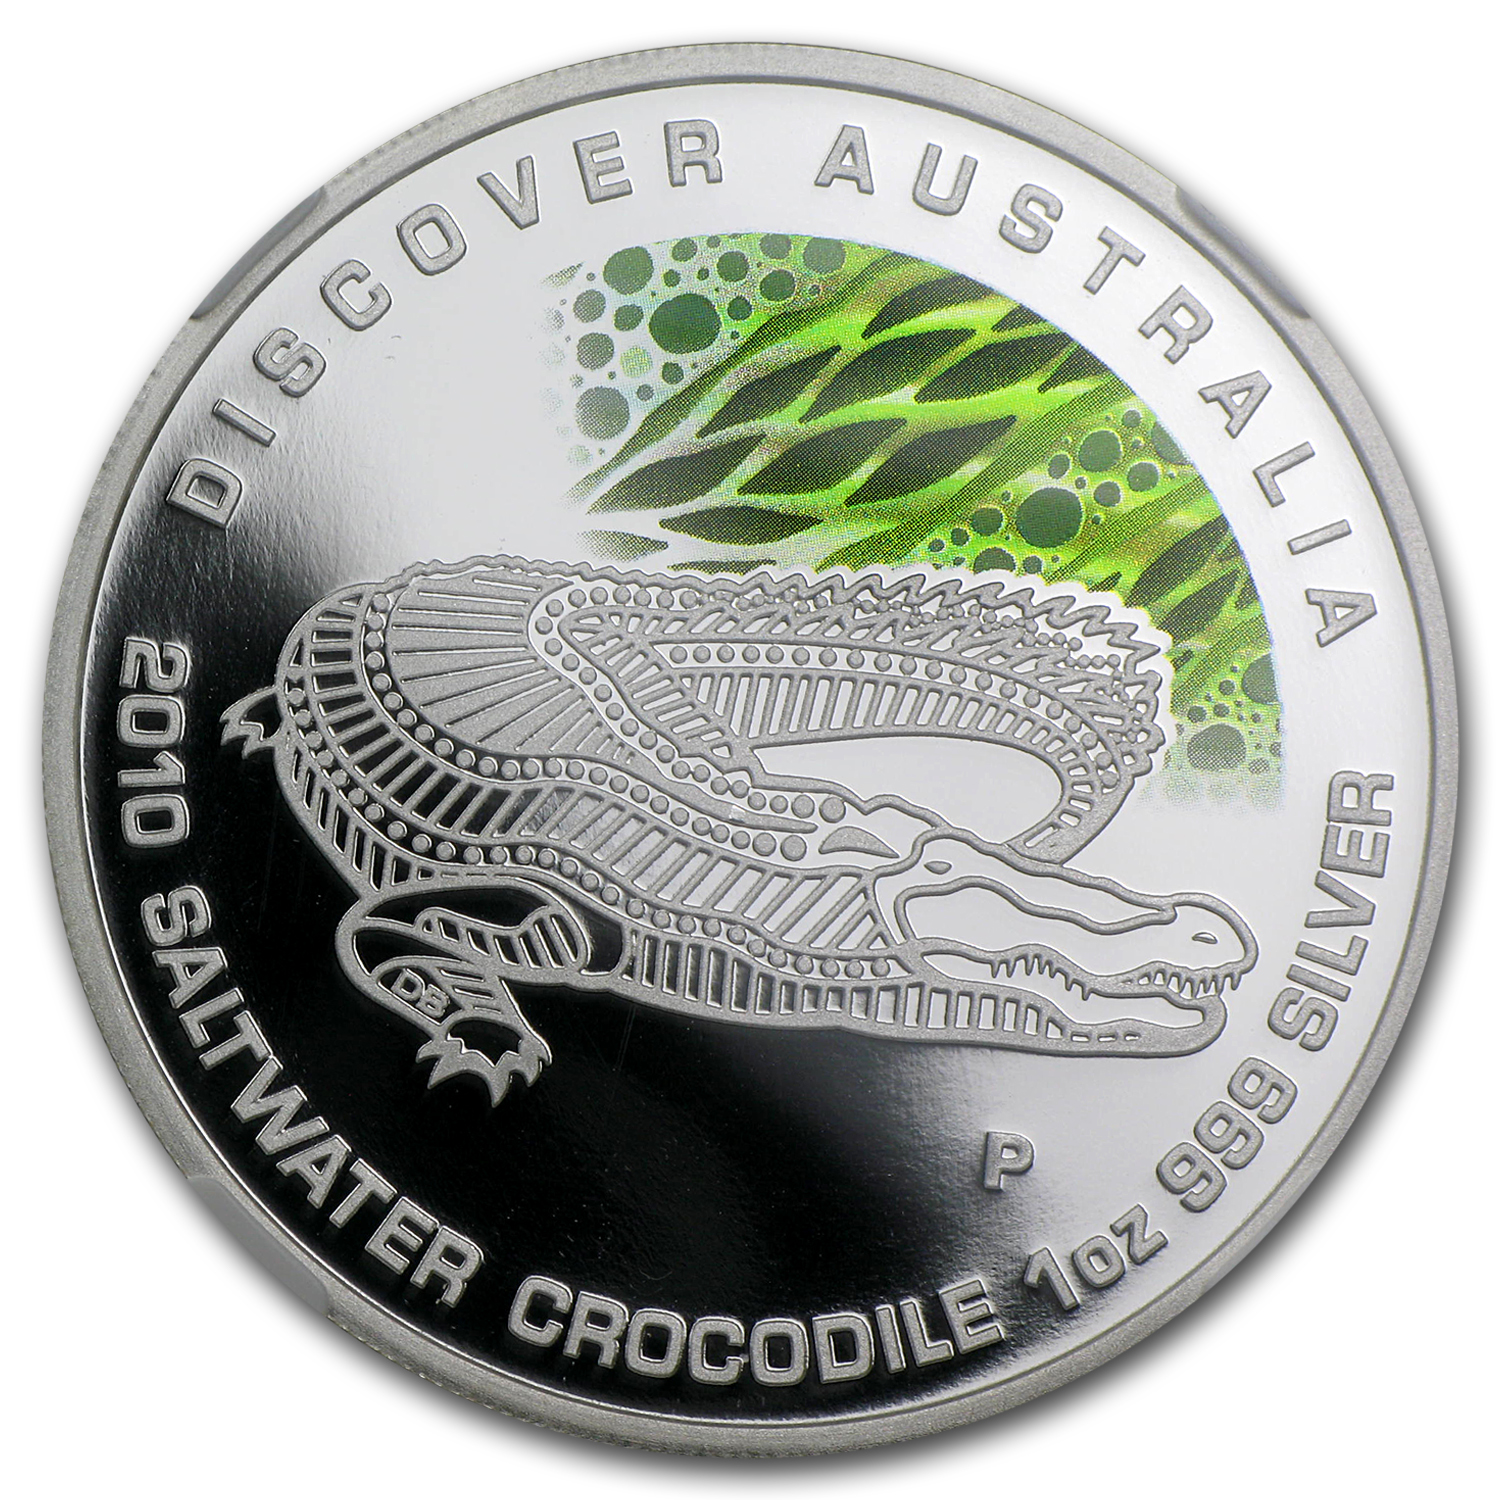 2010 1 oz Proof Silver Crocodile- Dreaming NGC PF-69 UCAM